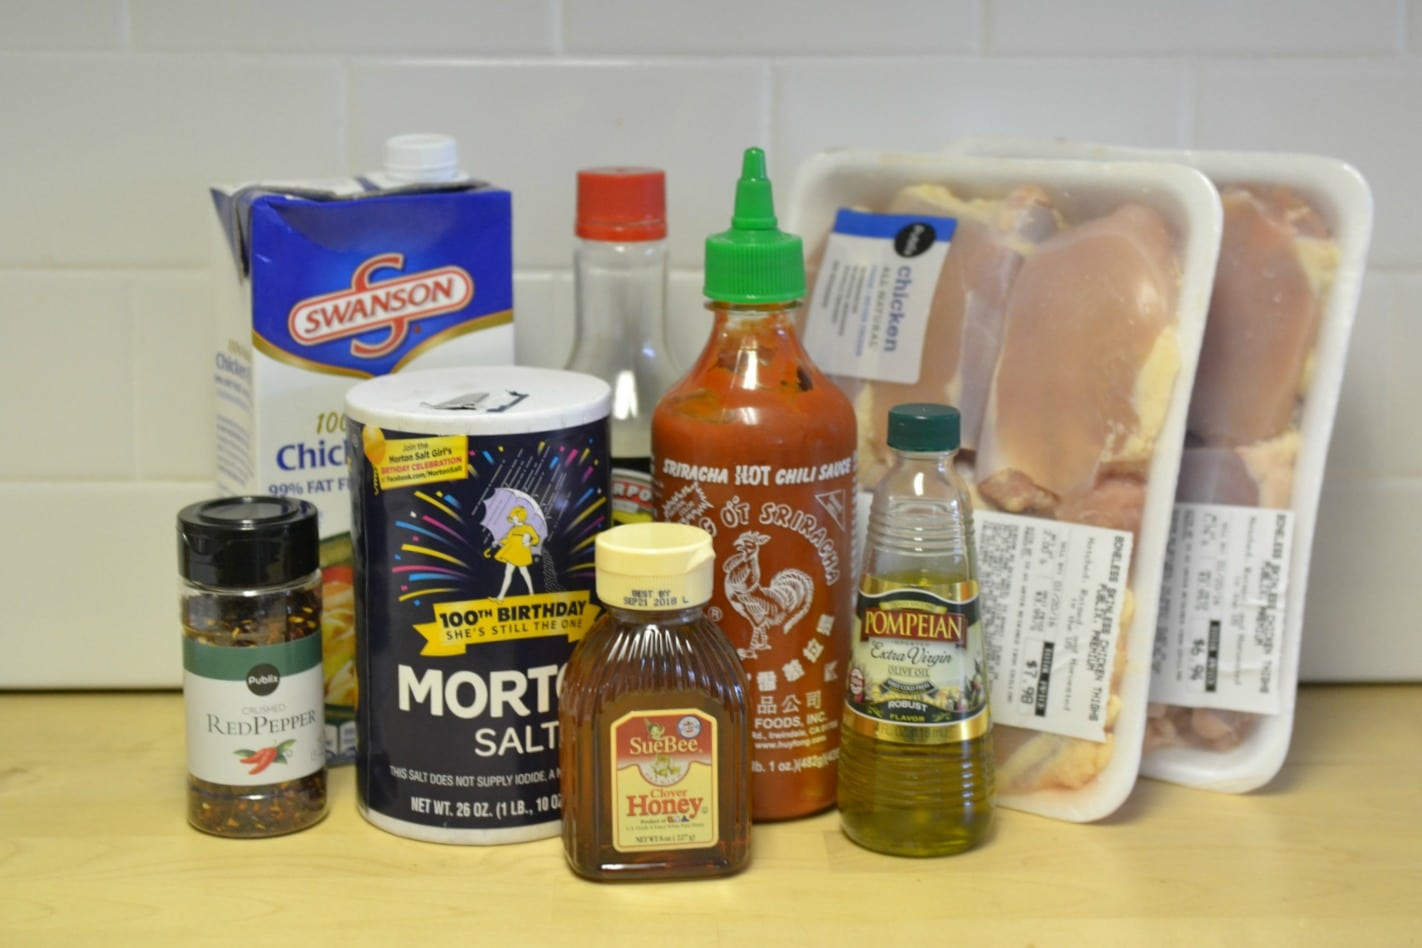 Assemble your ingredients: Olive oil, chicken broth, soy sauce, honey, Sriracha sauce, boneless, skinless chicken thighs and red pepper flakes.